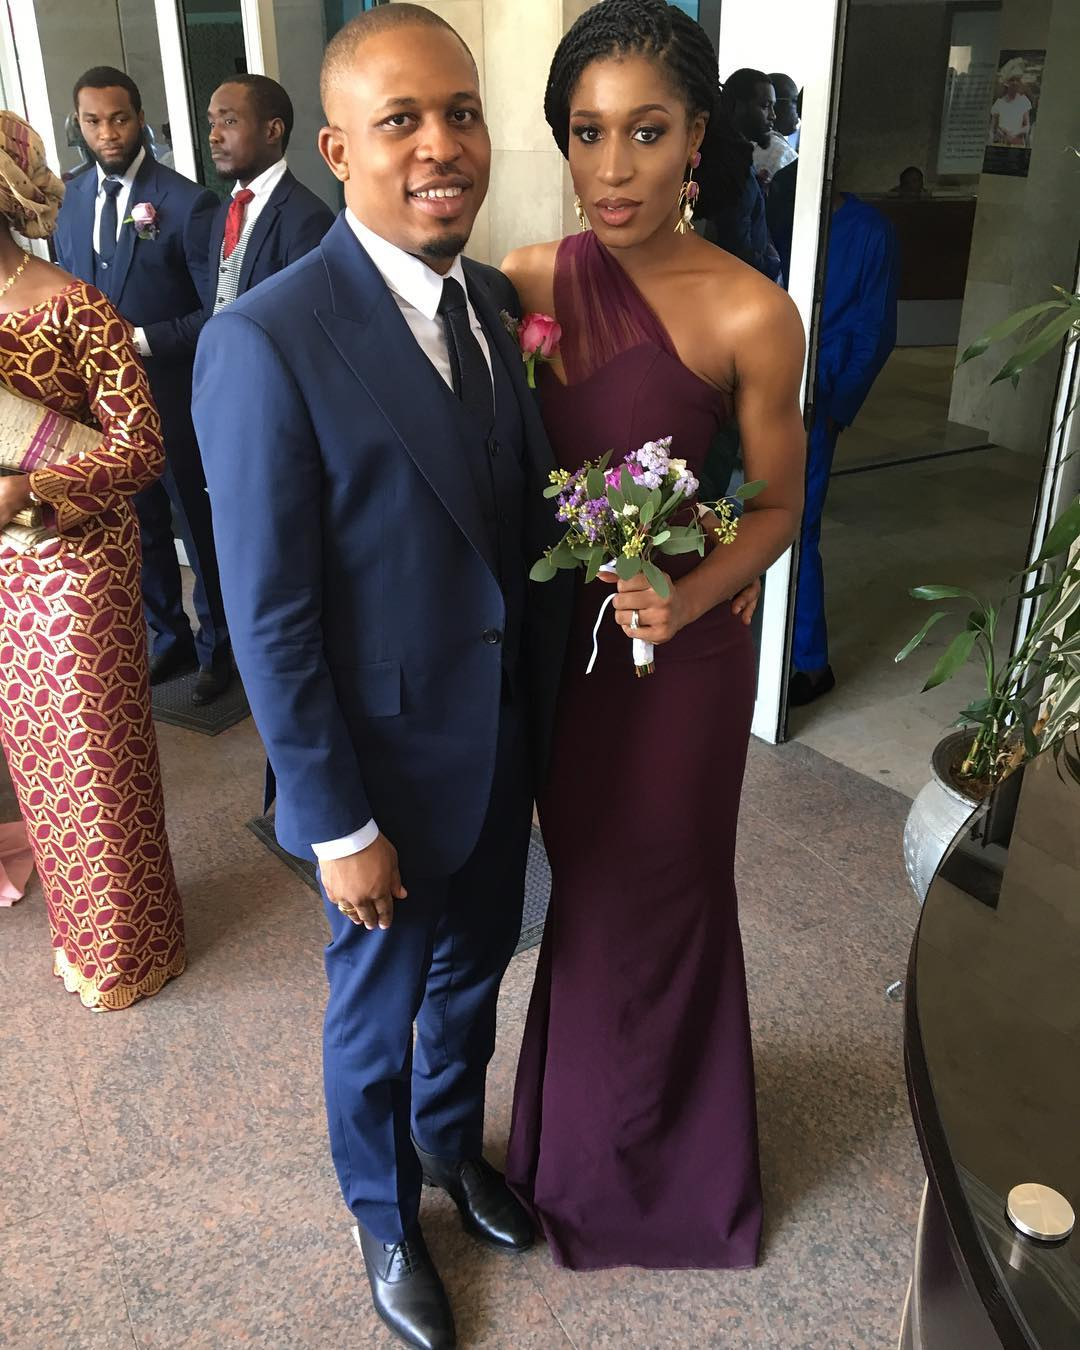 Naeto C Wife - Naeto C and His Wife Celebrate Their Fifth Wedding Anniversary